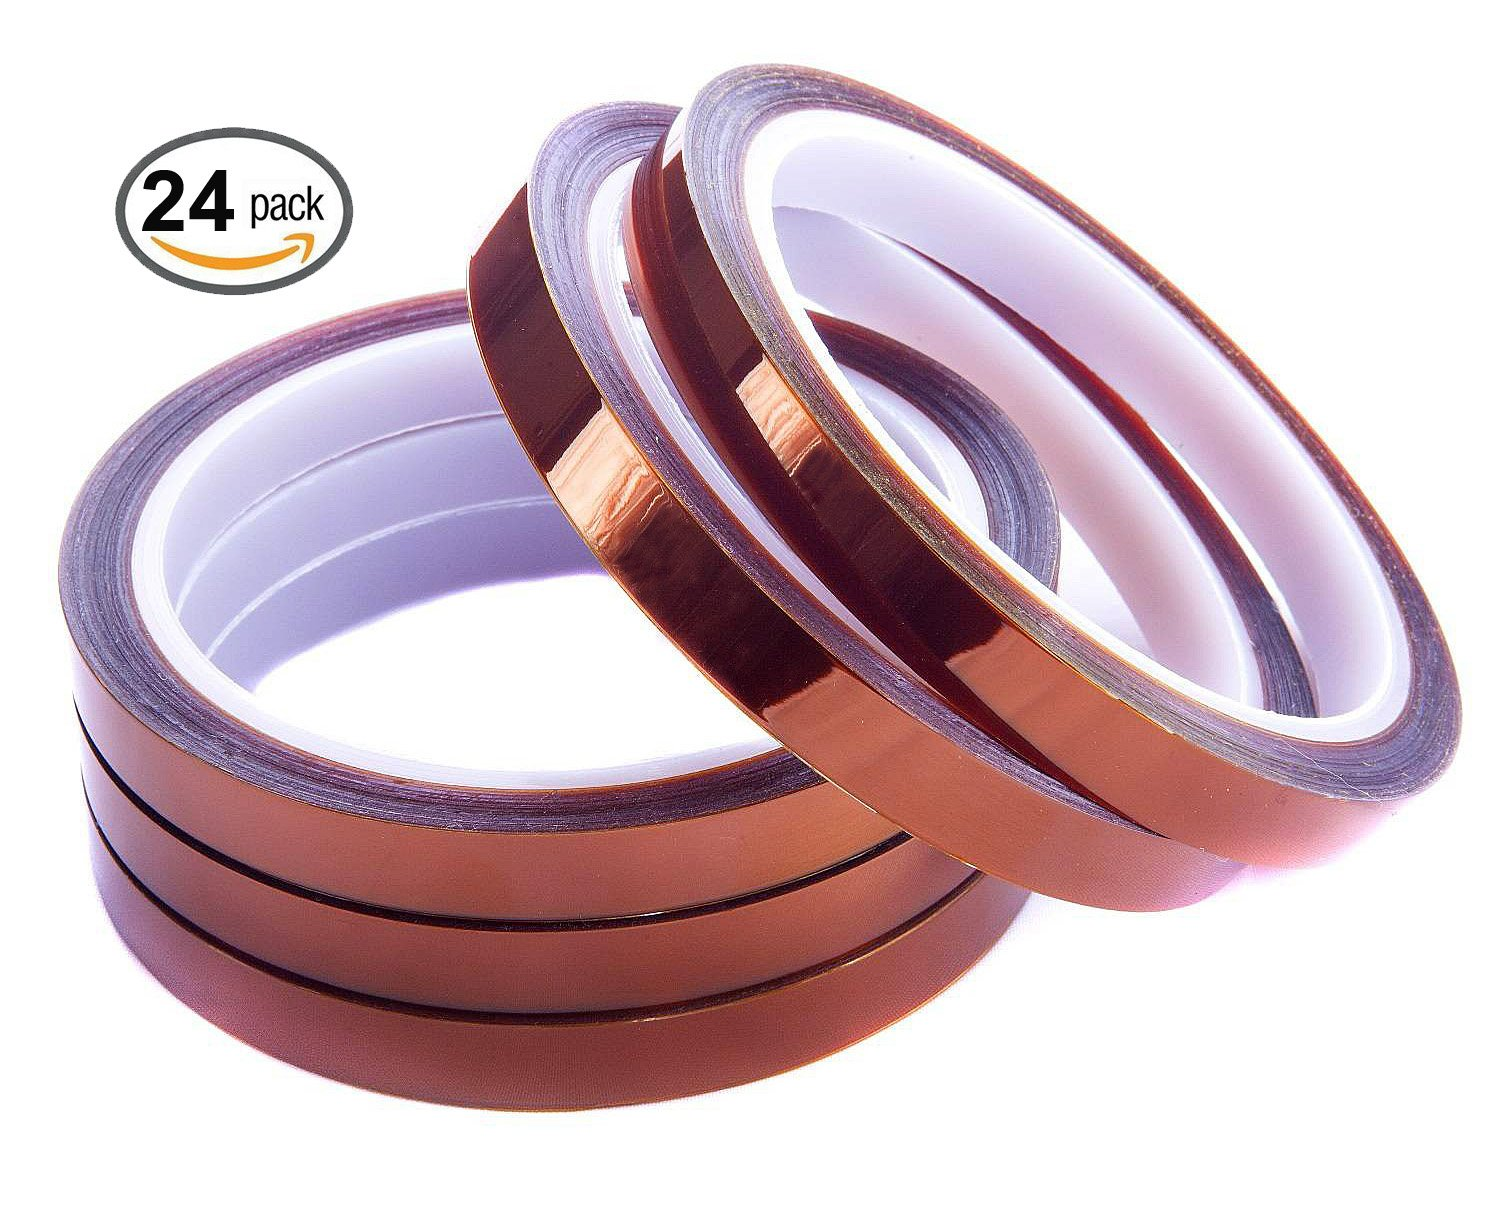 Merco Polyimide Film Tape 1/2'' x 36 yds - use for Kapton